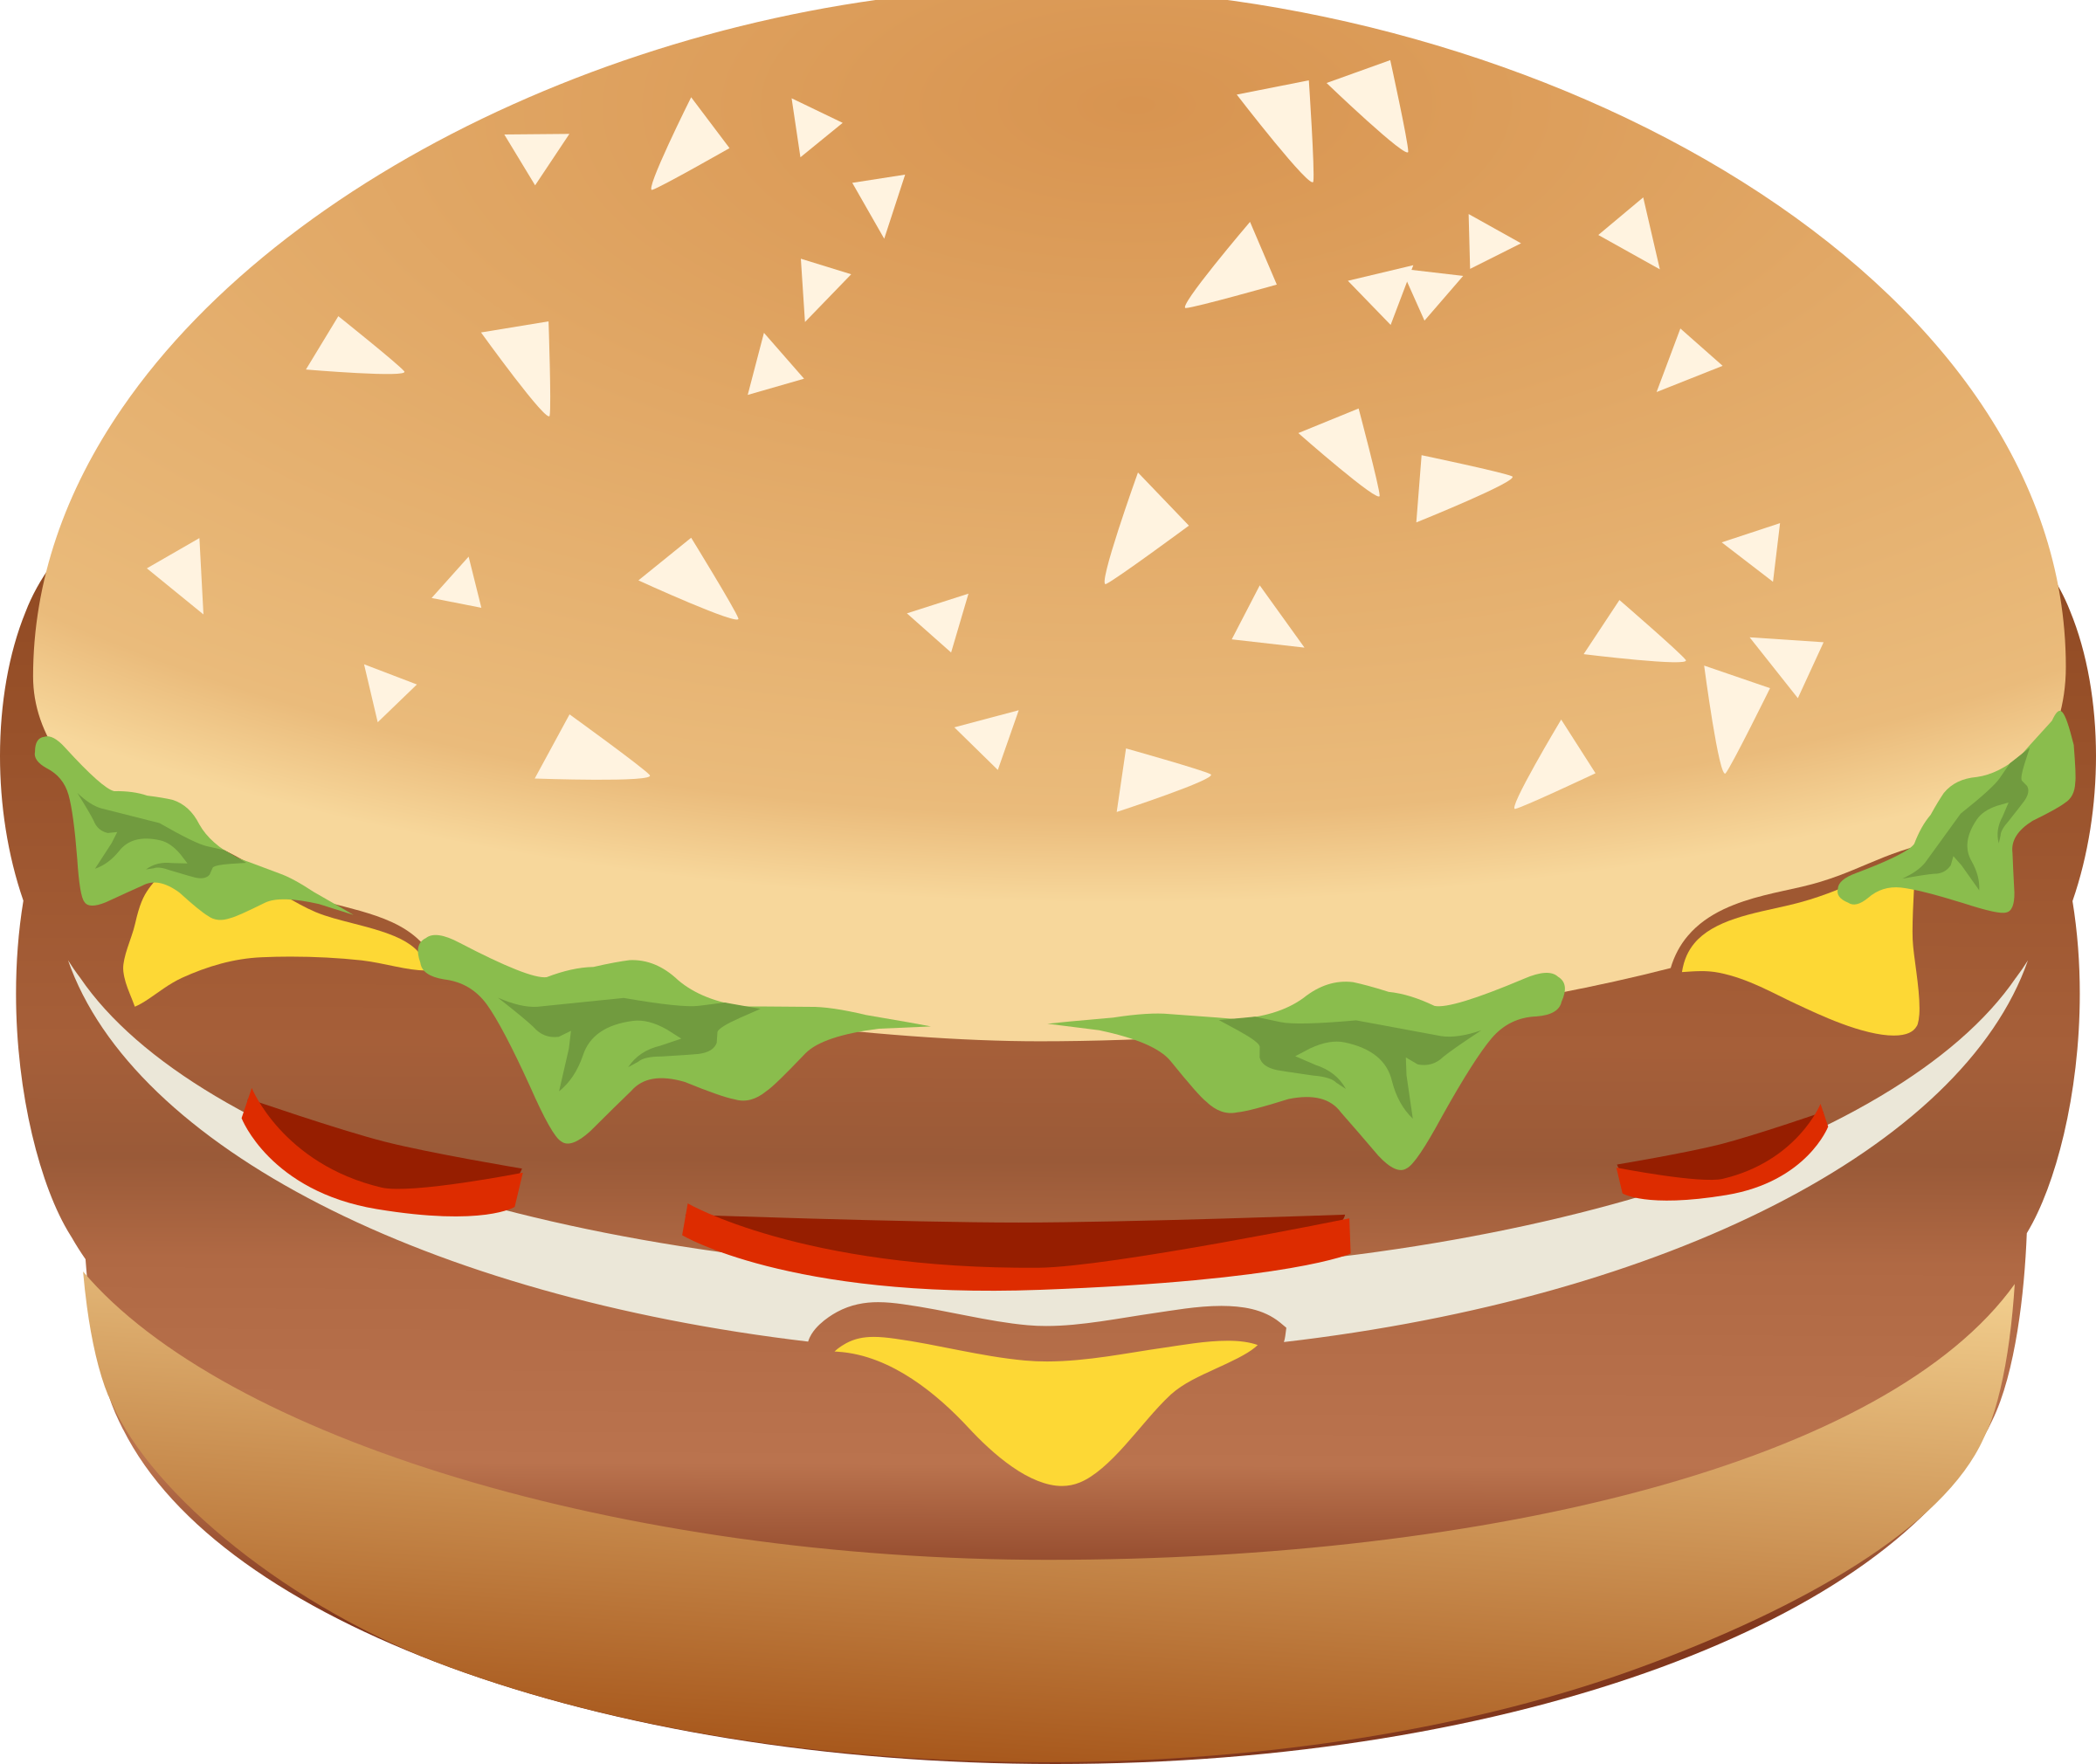 Hamburger Burger Remix with Colors by monsterbraingames